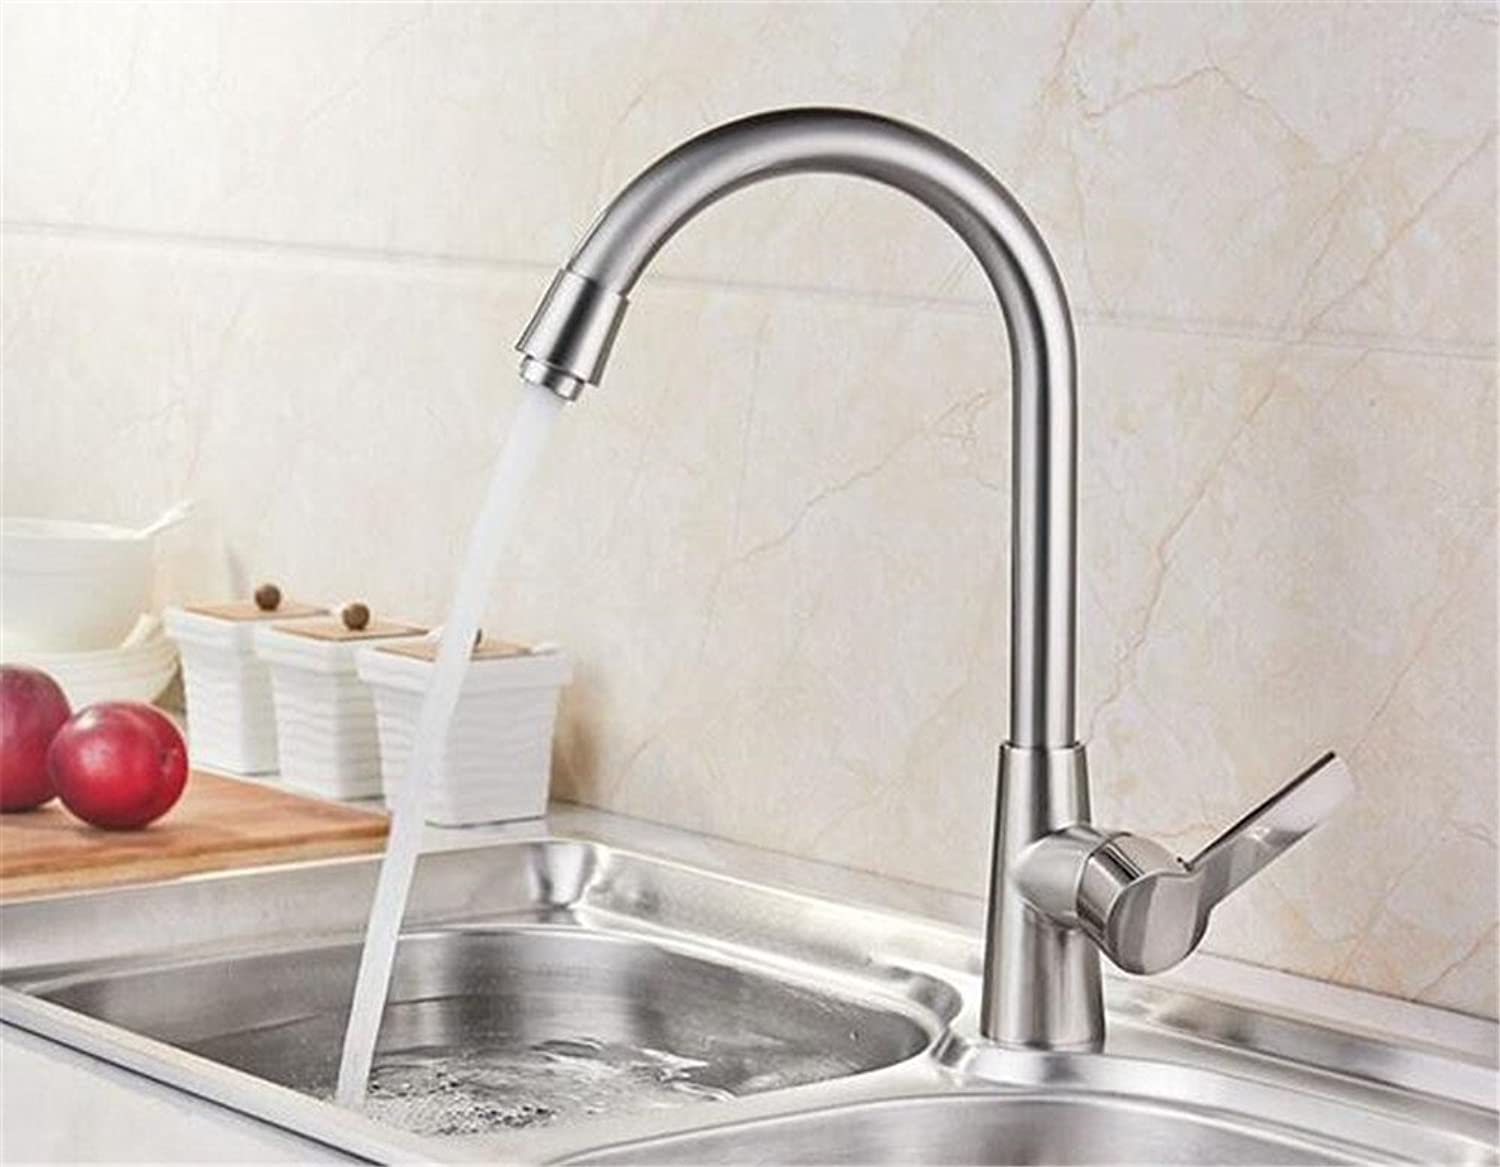 Decorry 304 Cold Kitchen Faucet Mixing Valve Member Hot and Cold Water All Copper Kitchen Sink Faucet Ceramic Valve Core, Goddess Cold Drawing Section 7